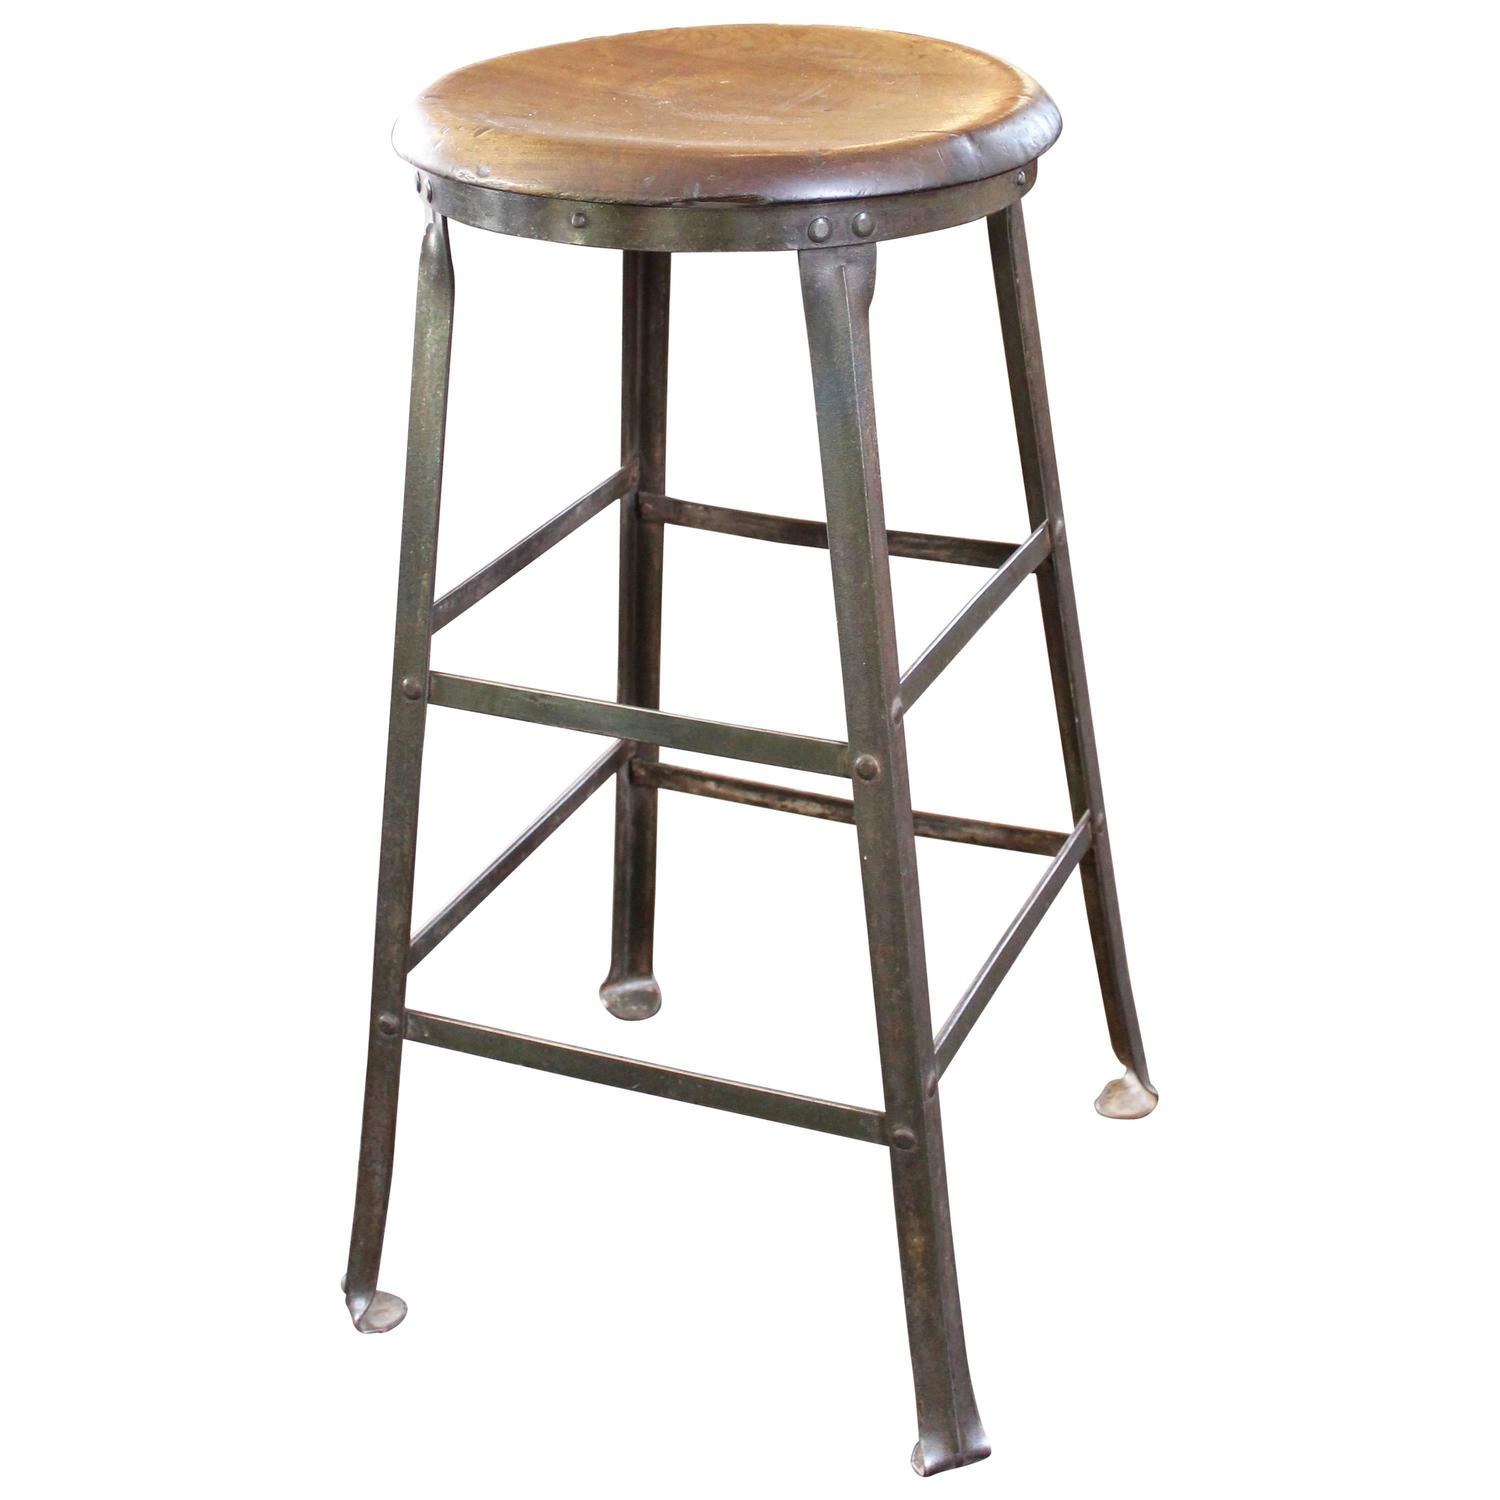 wicker furniture the fantastic unbelievable metal bar stool rustic backless kitchen wood and manufacturers round accent table swivel stools dressing patterned armchair inch seat